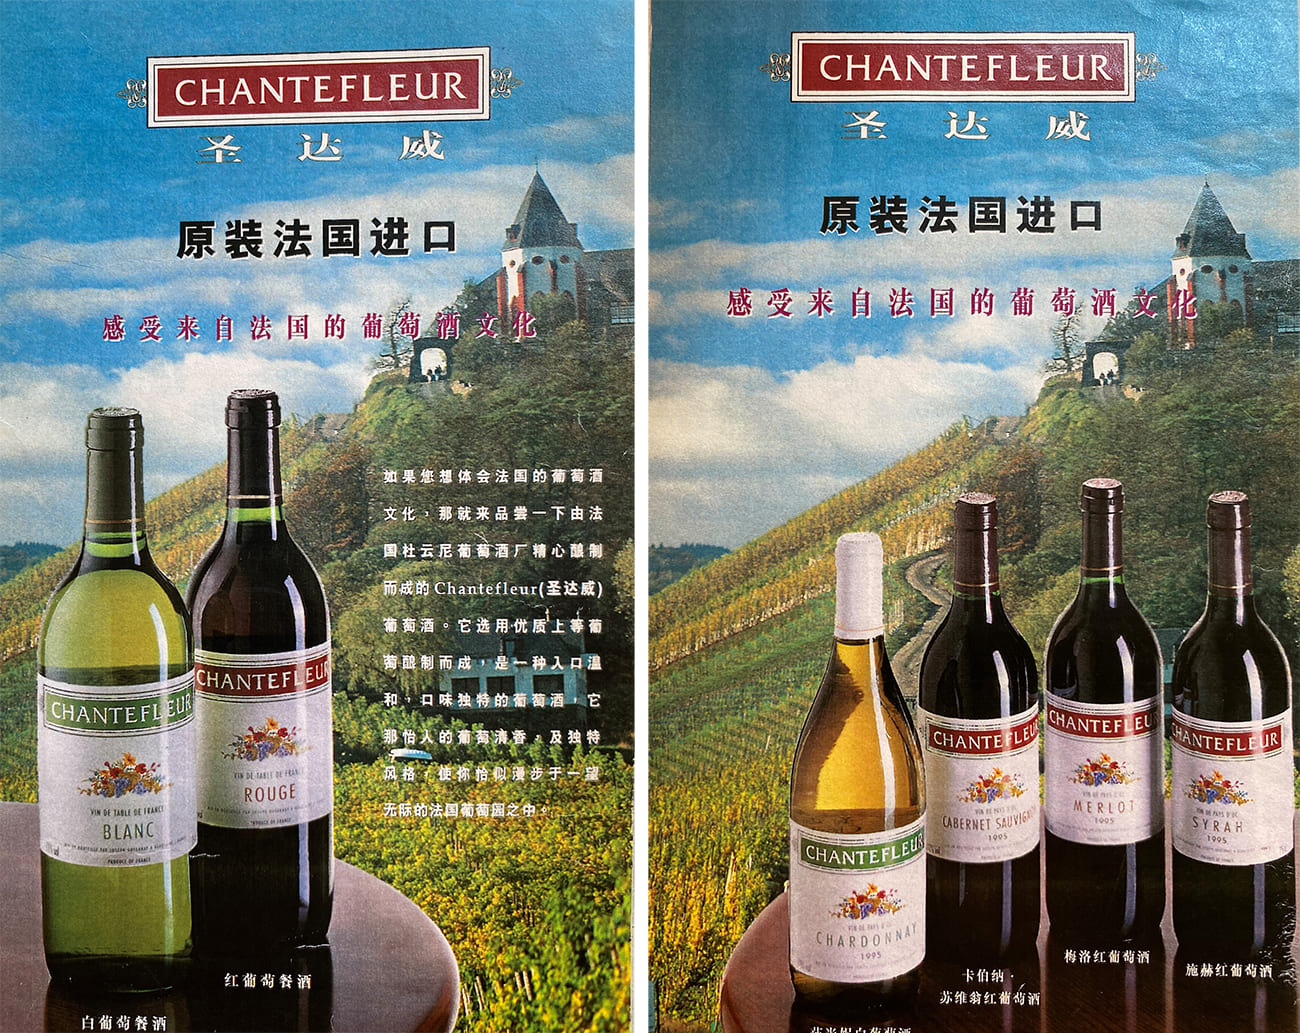 Nationwide Distribution of a French brand in China